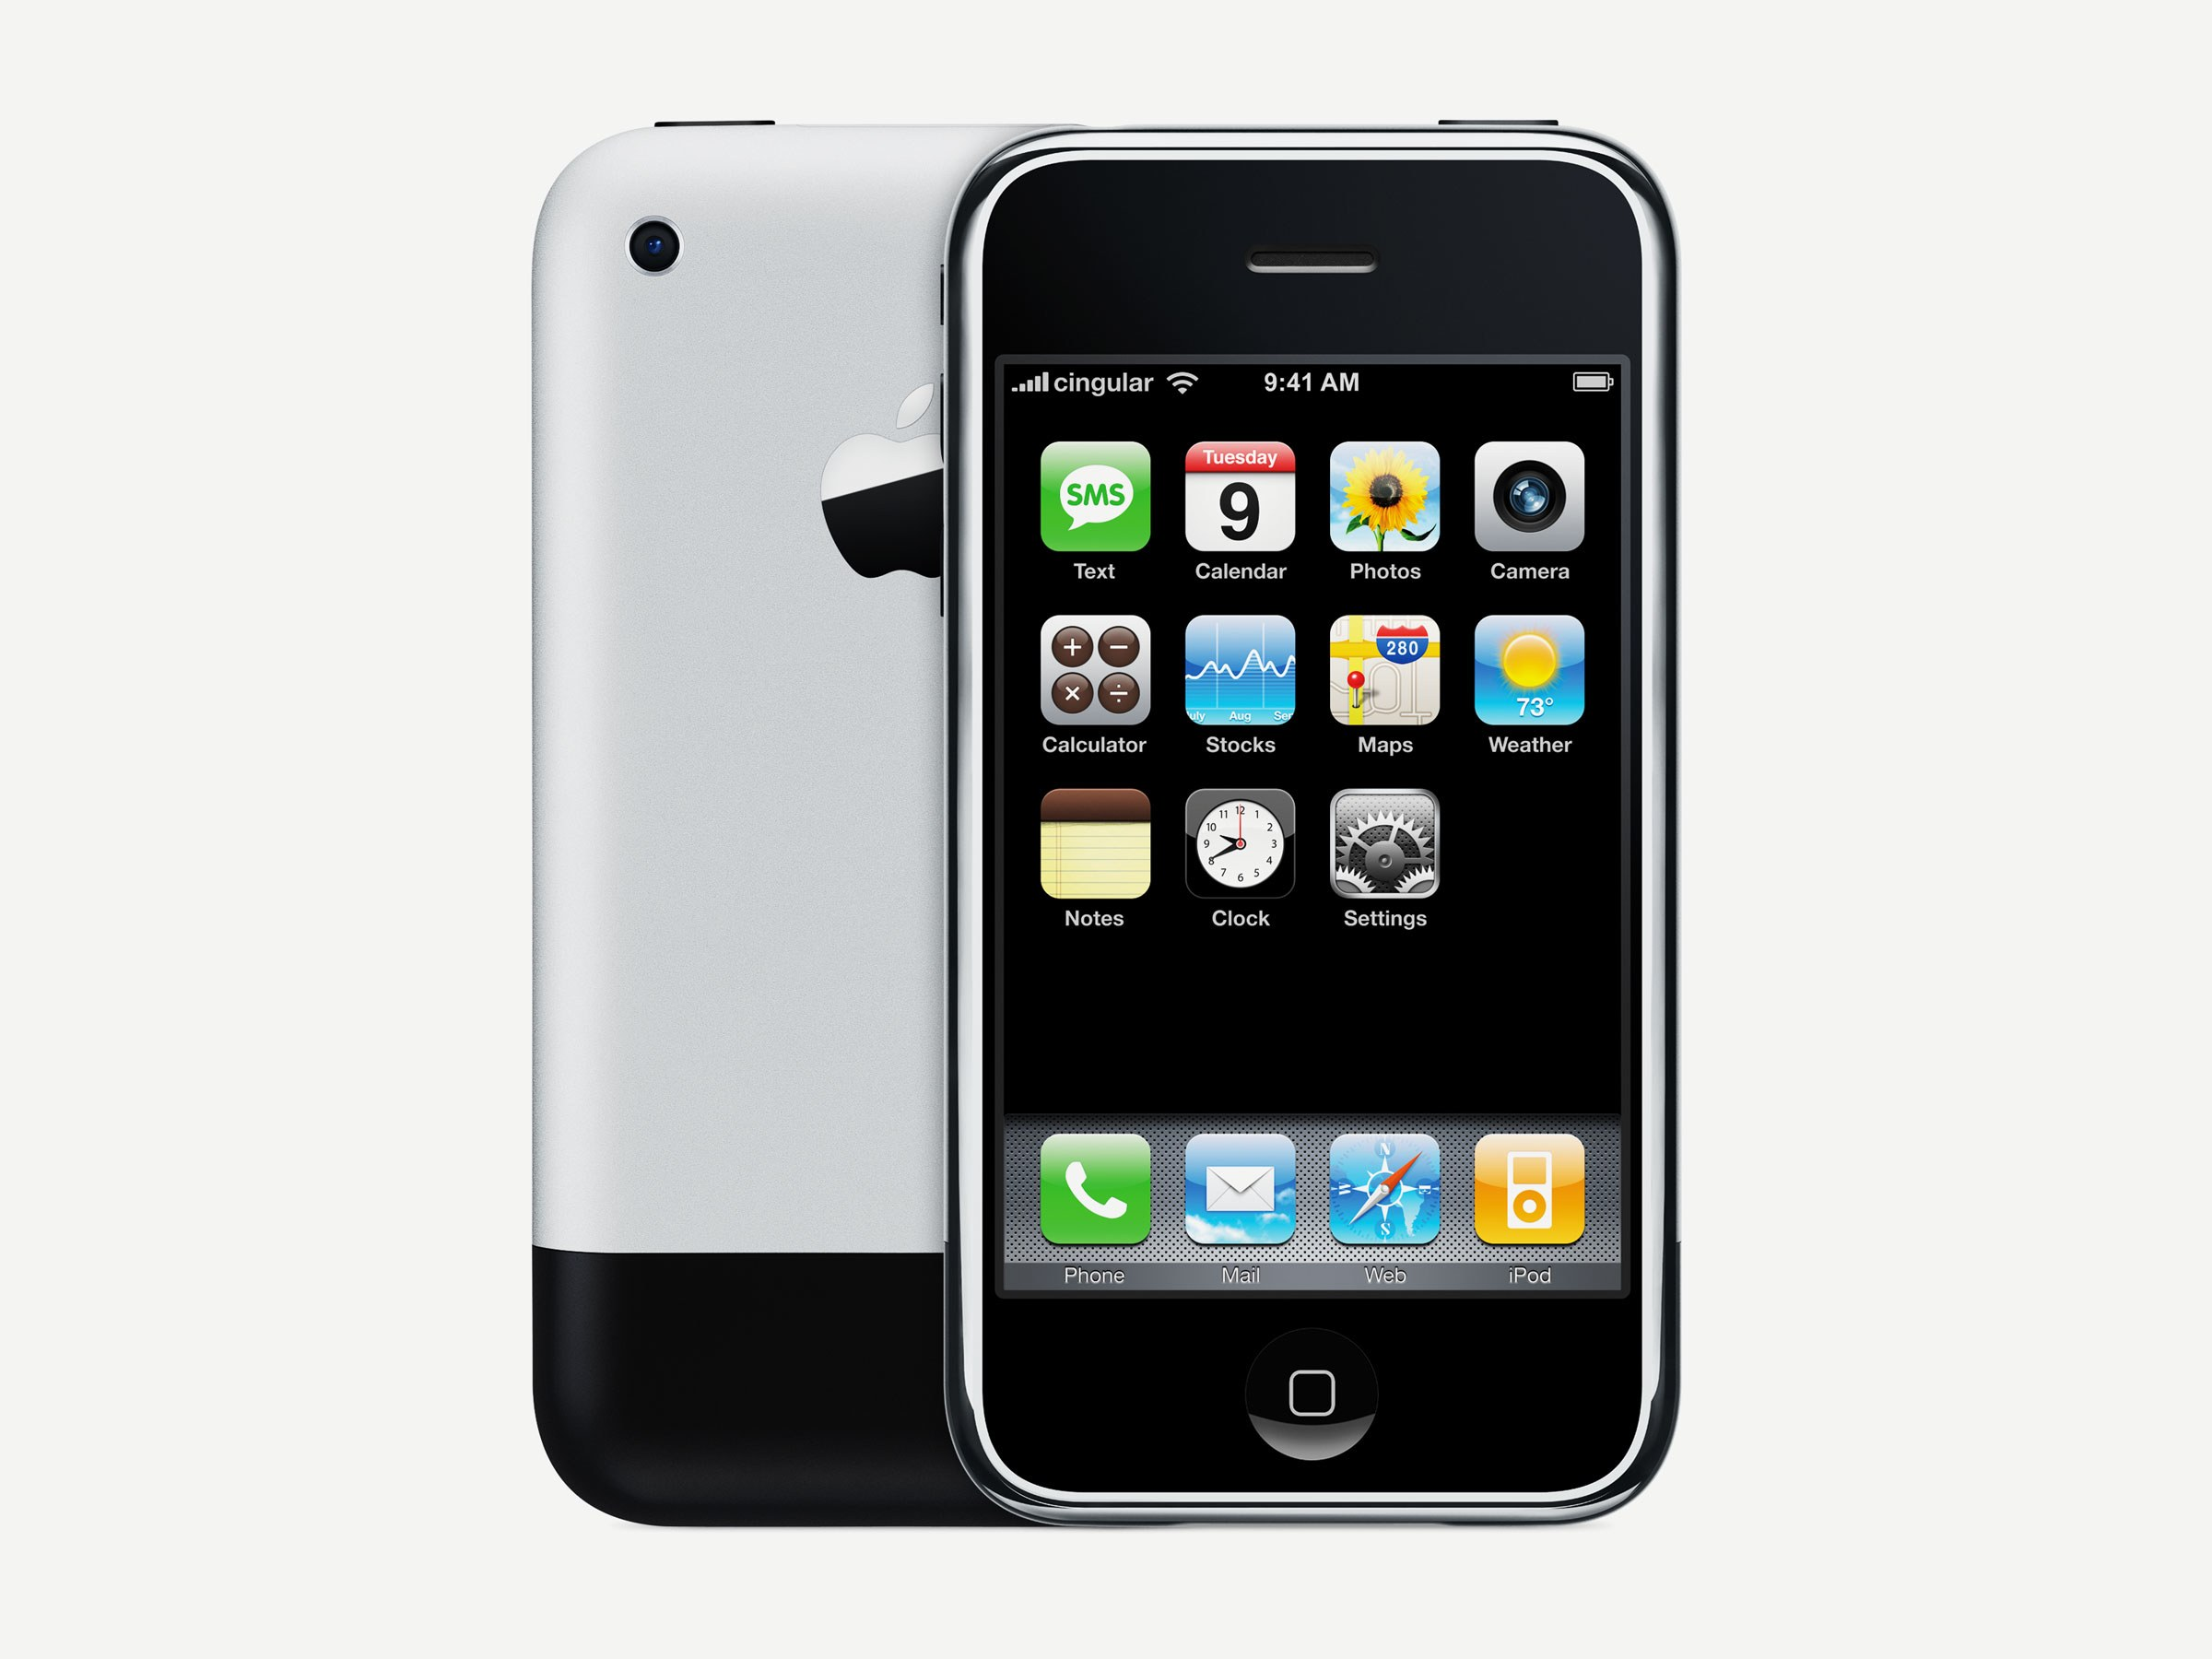 the first iPhone , man what a commodity this was